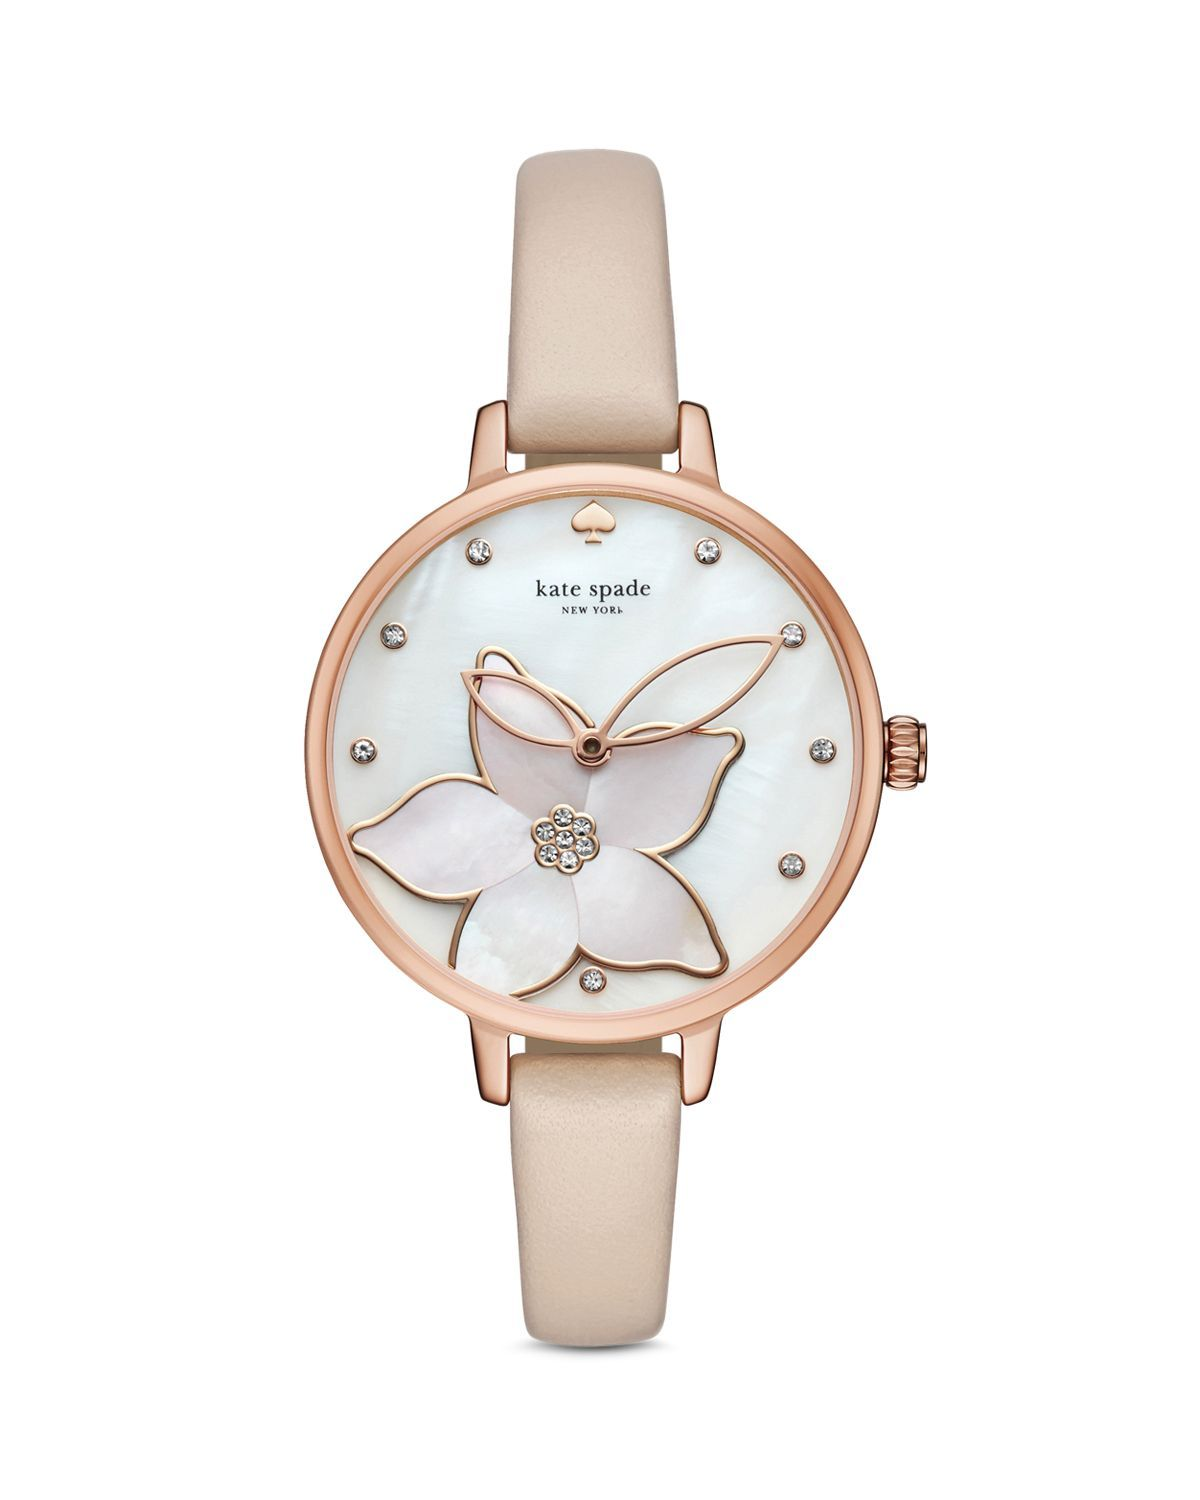 Kate Spade Watch, Stylish